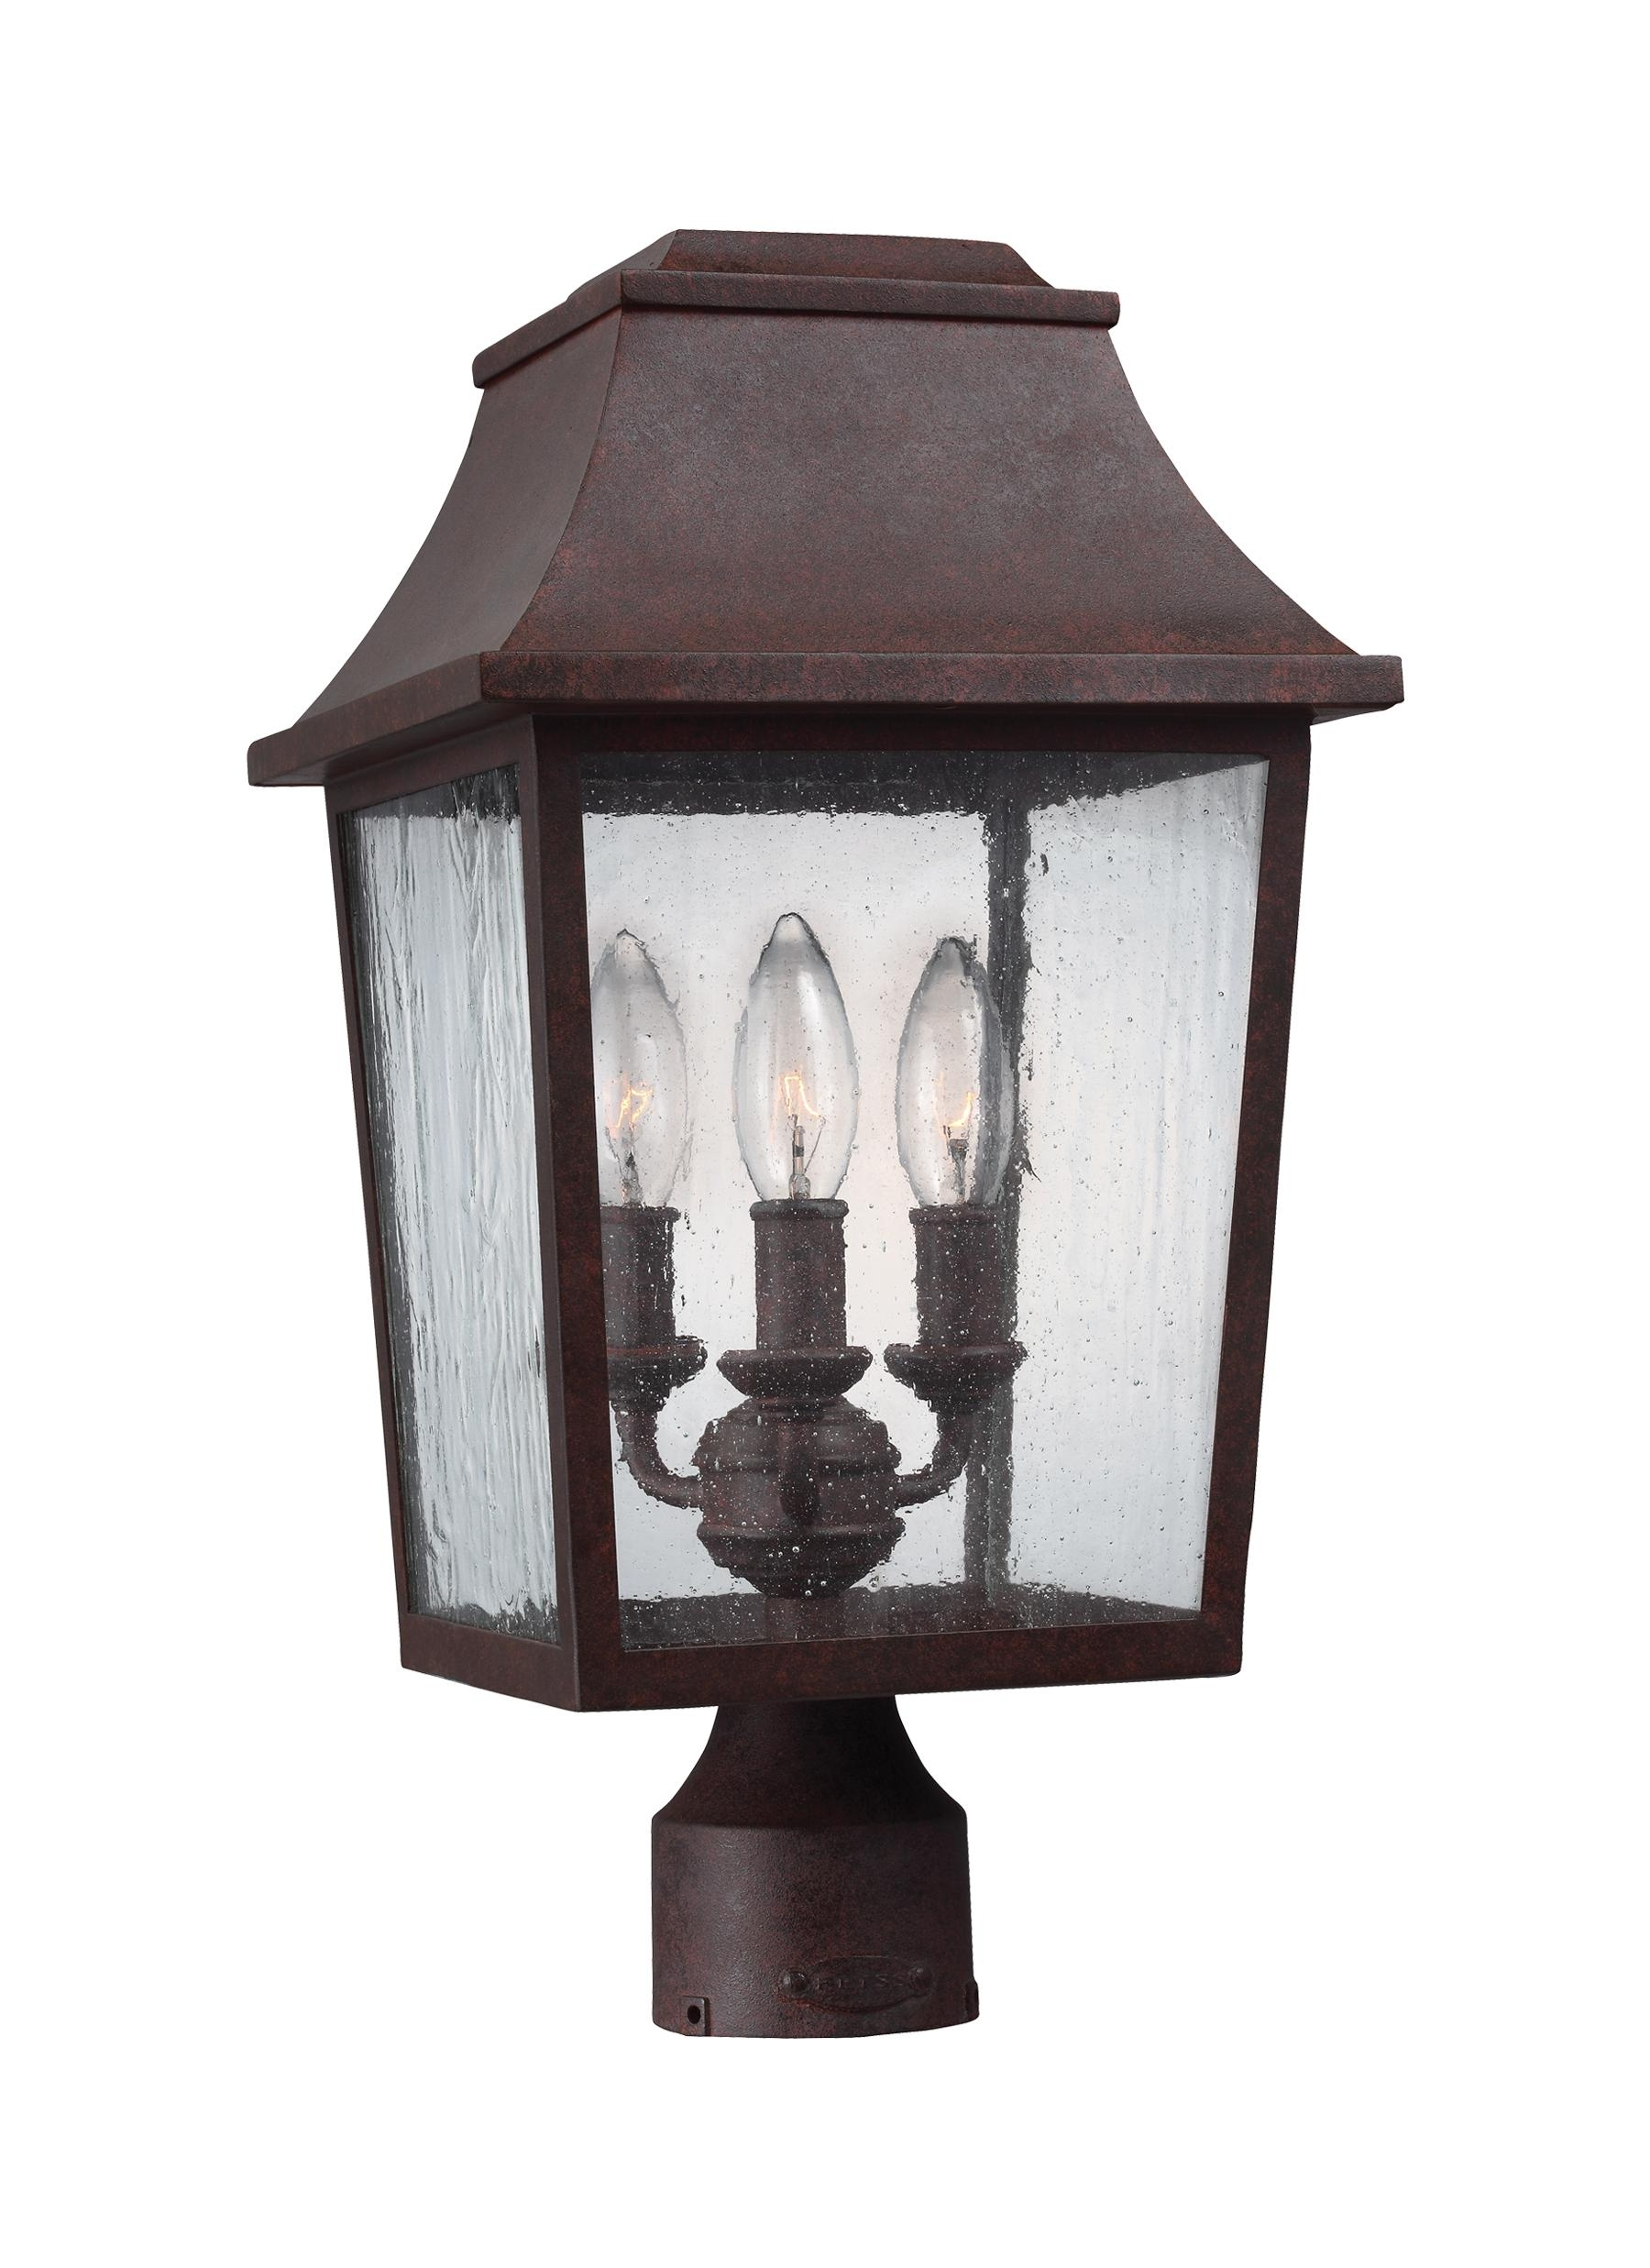 Ol11909Pcr,3 - Light Outdoor Post Lantern,patina Copper throughout Copper Outdoor Lanterns (Image 11 of 20)